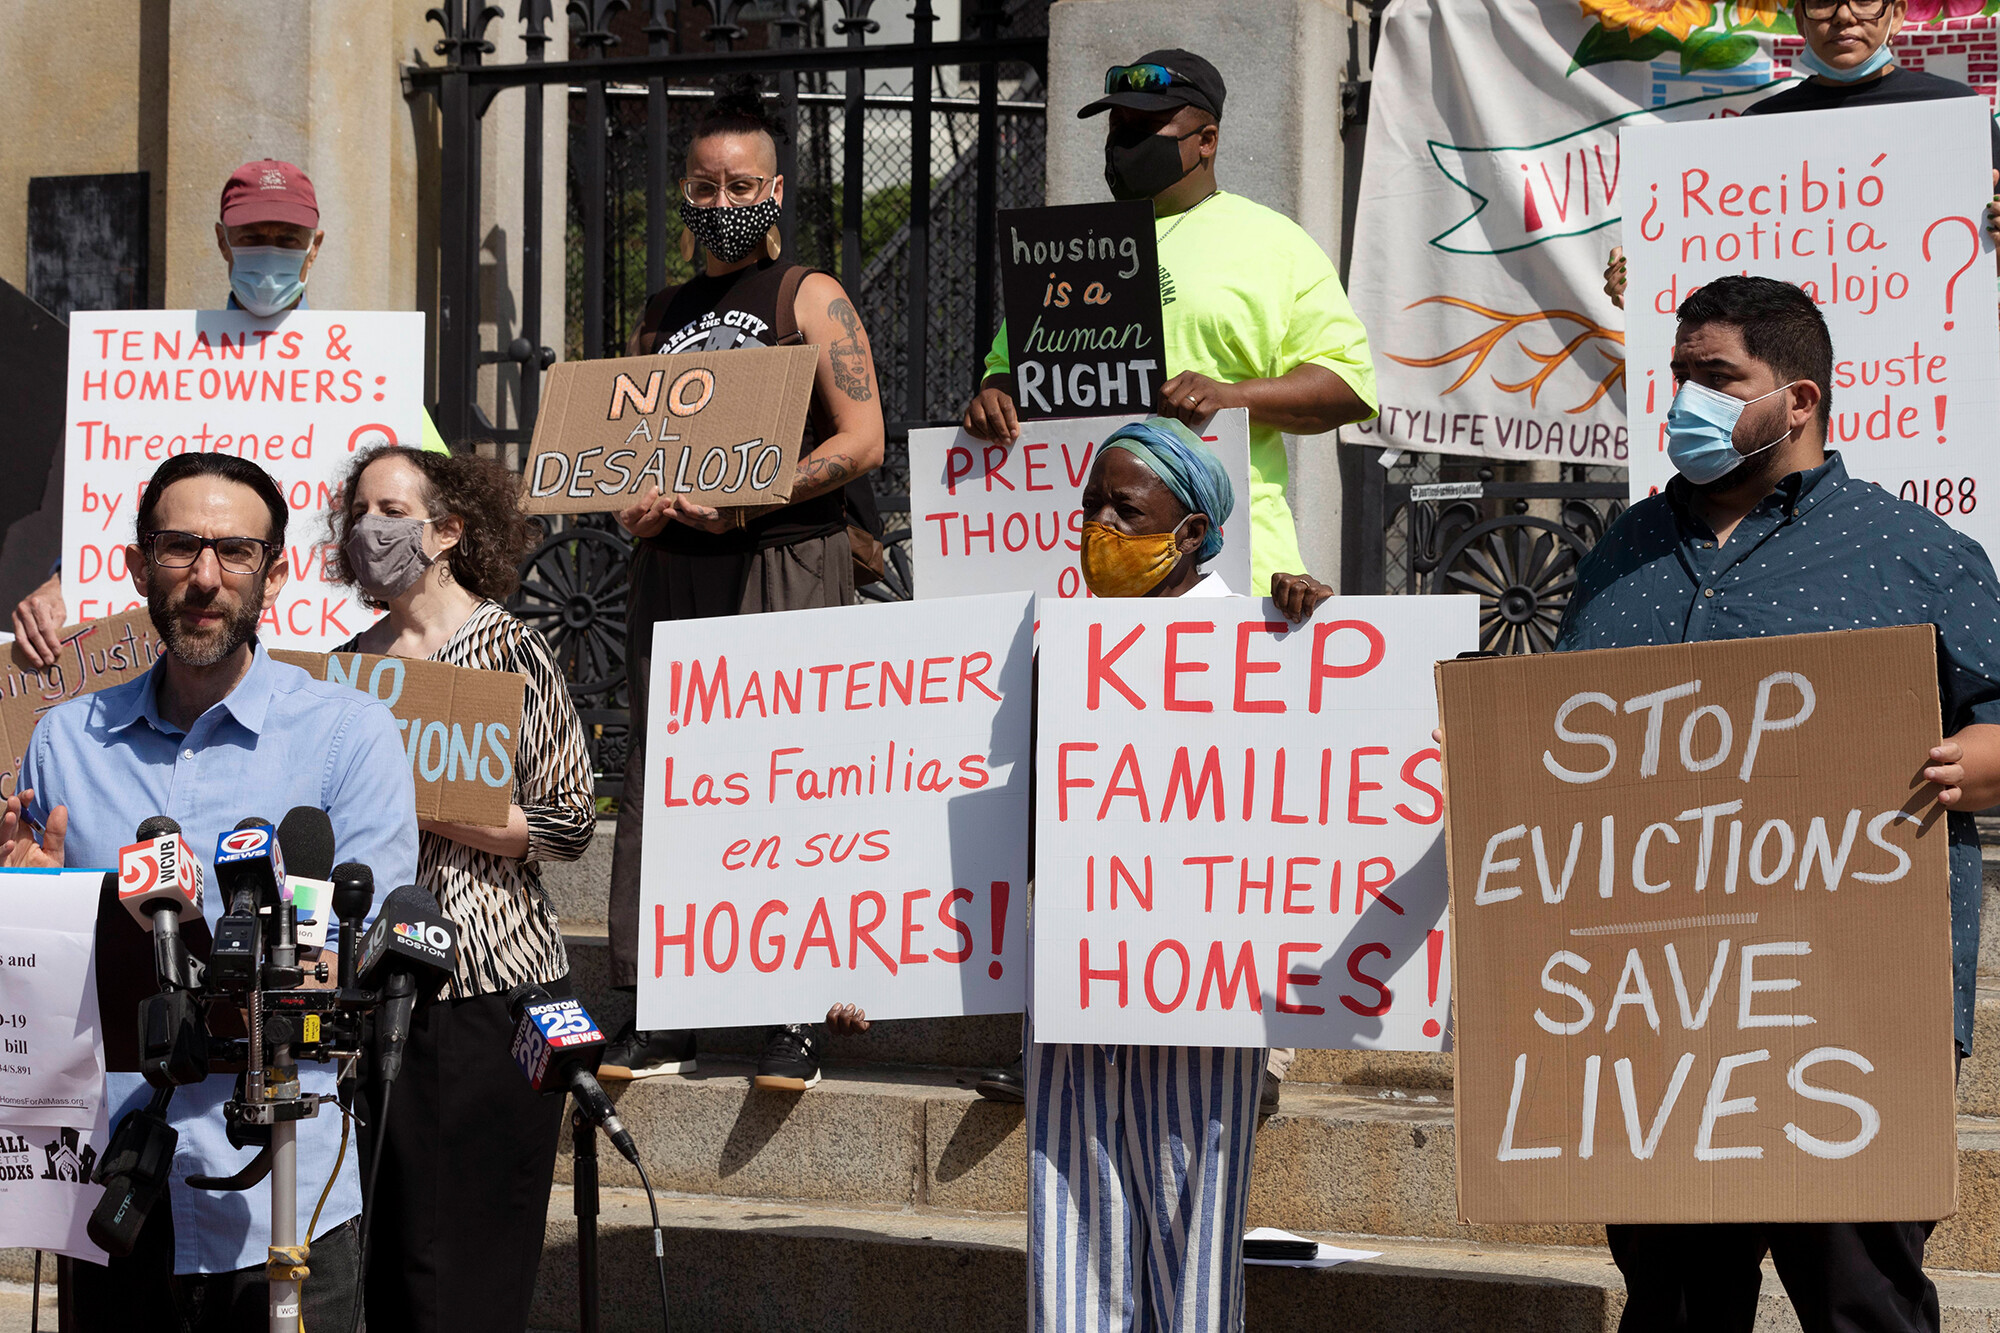 What's next for struggling renters now that the eviction ban has expired